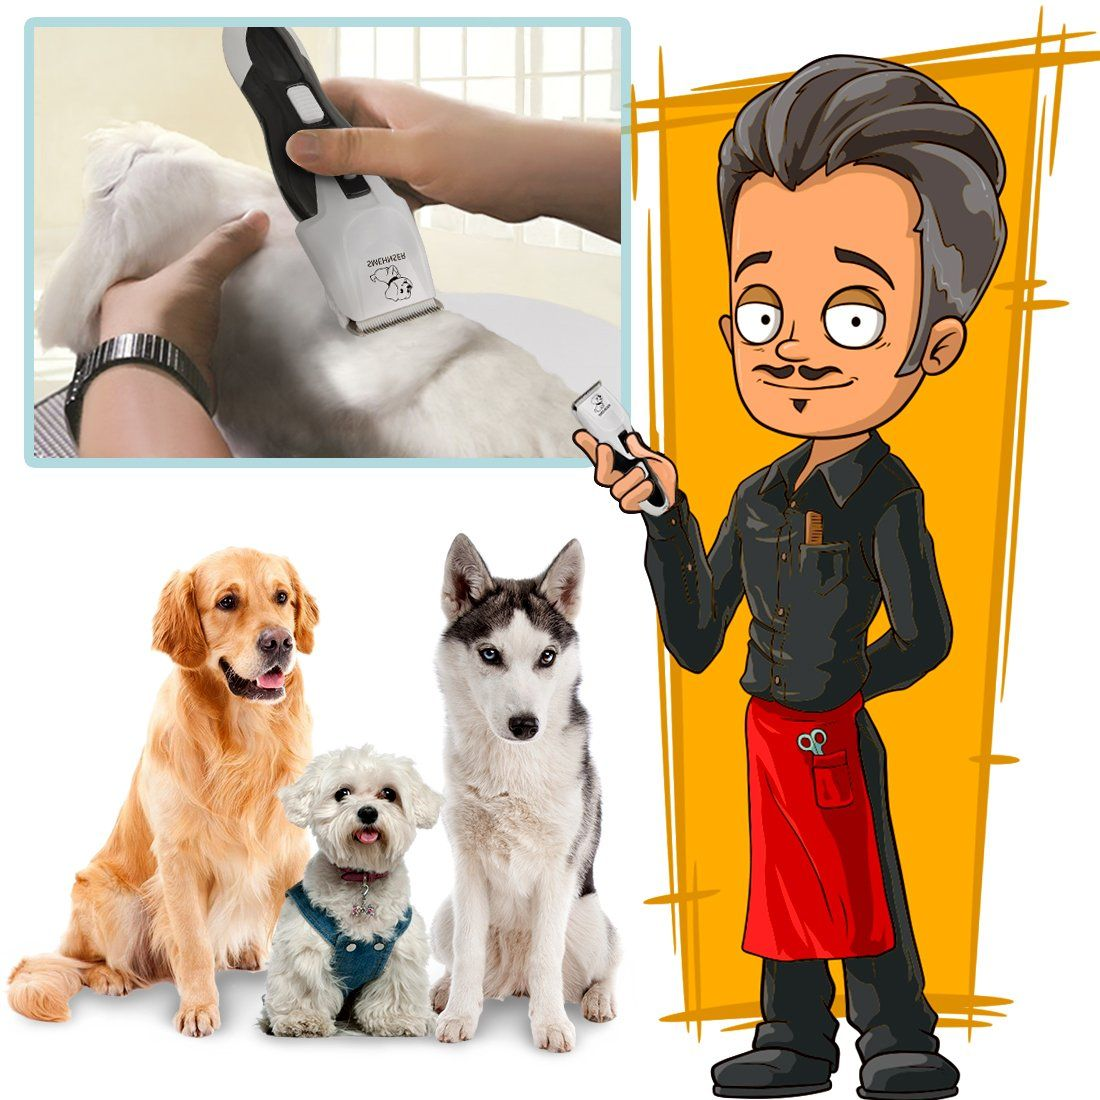 Pet Grooming Clippers Professional Low Noise And Rechargeable Cordless Clipper For Dogs And Cats Electric Dog Grooming Dog Grooming Tools Dog Grooming Clippers